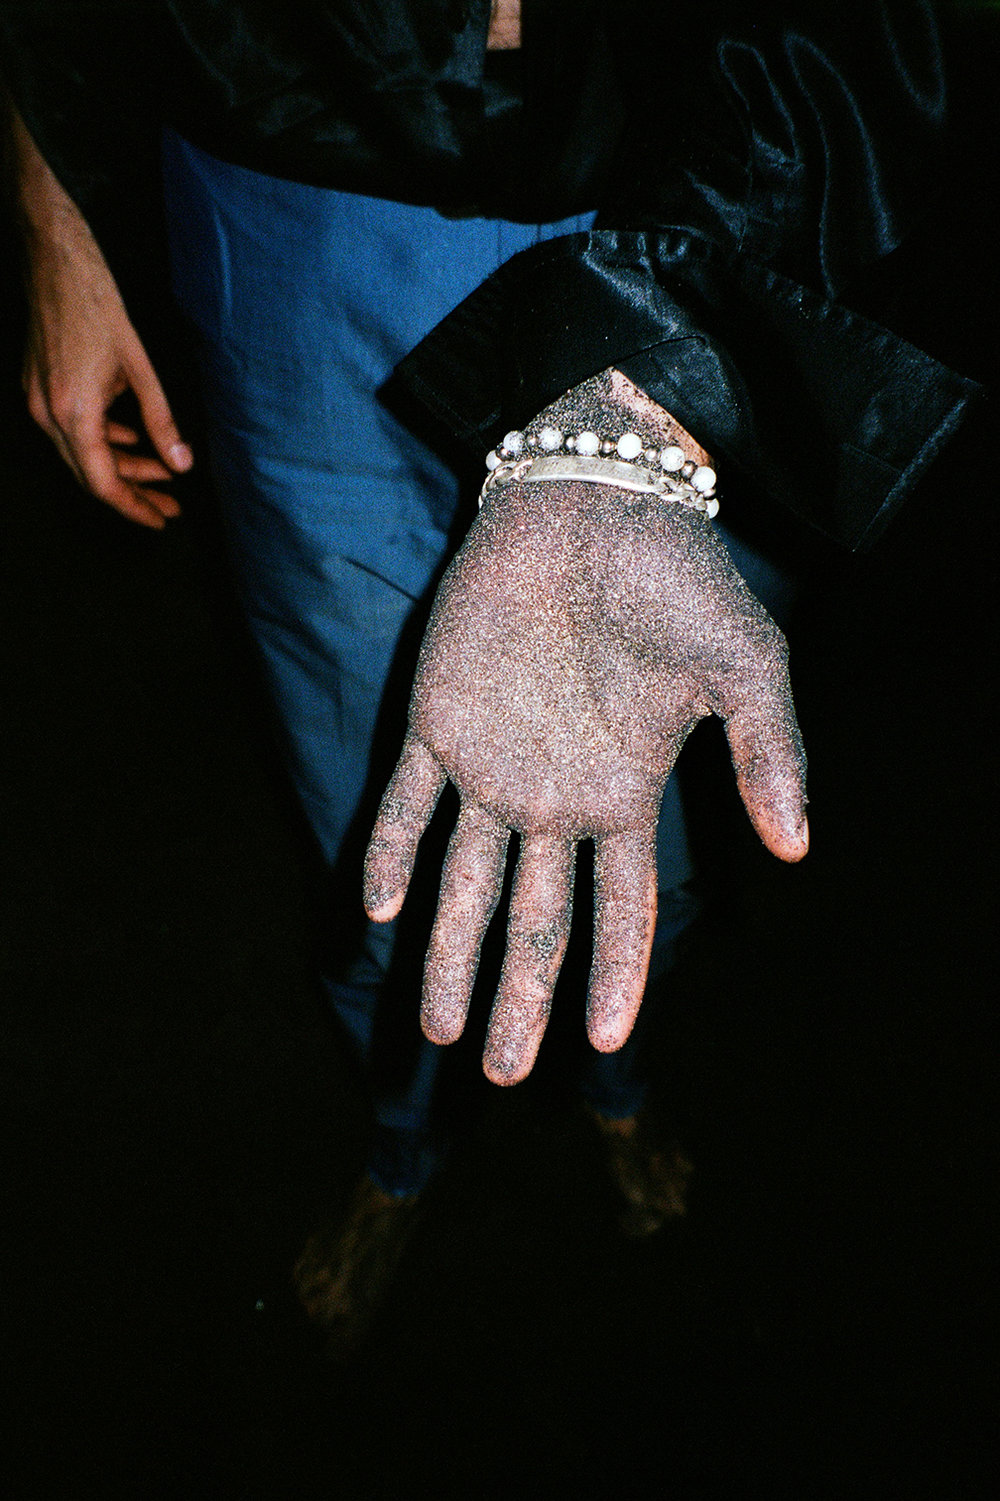 Chris hand covered in black sand_00038.jpg